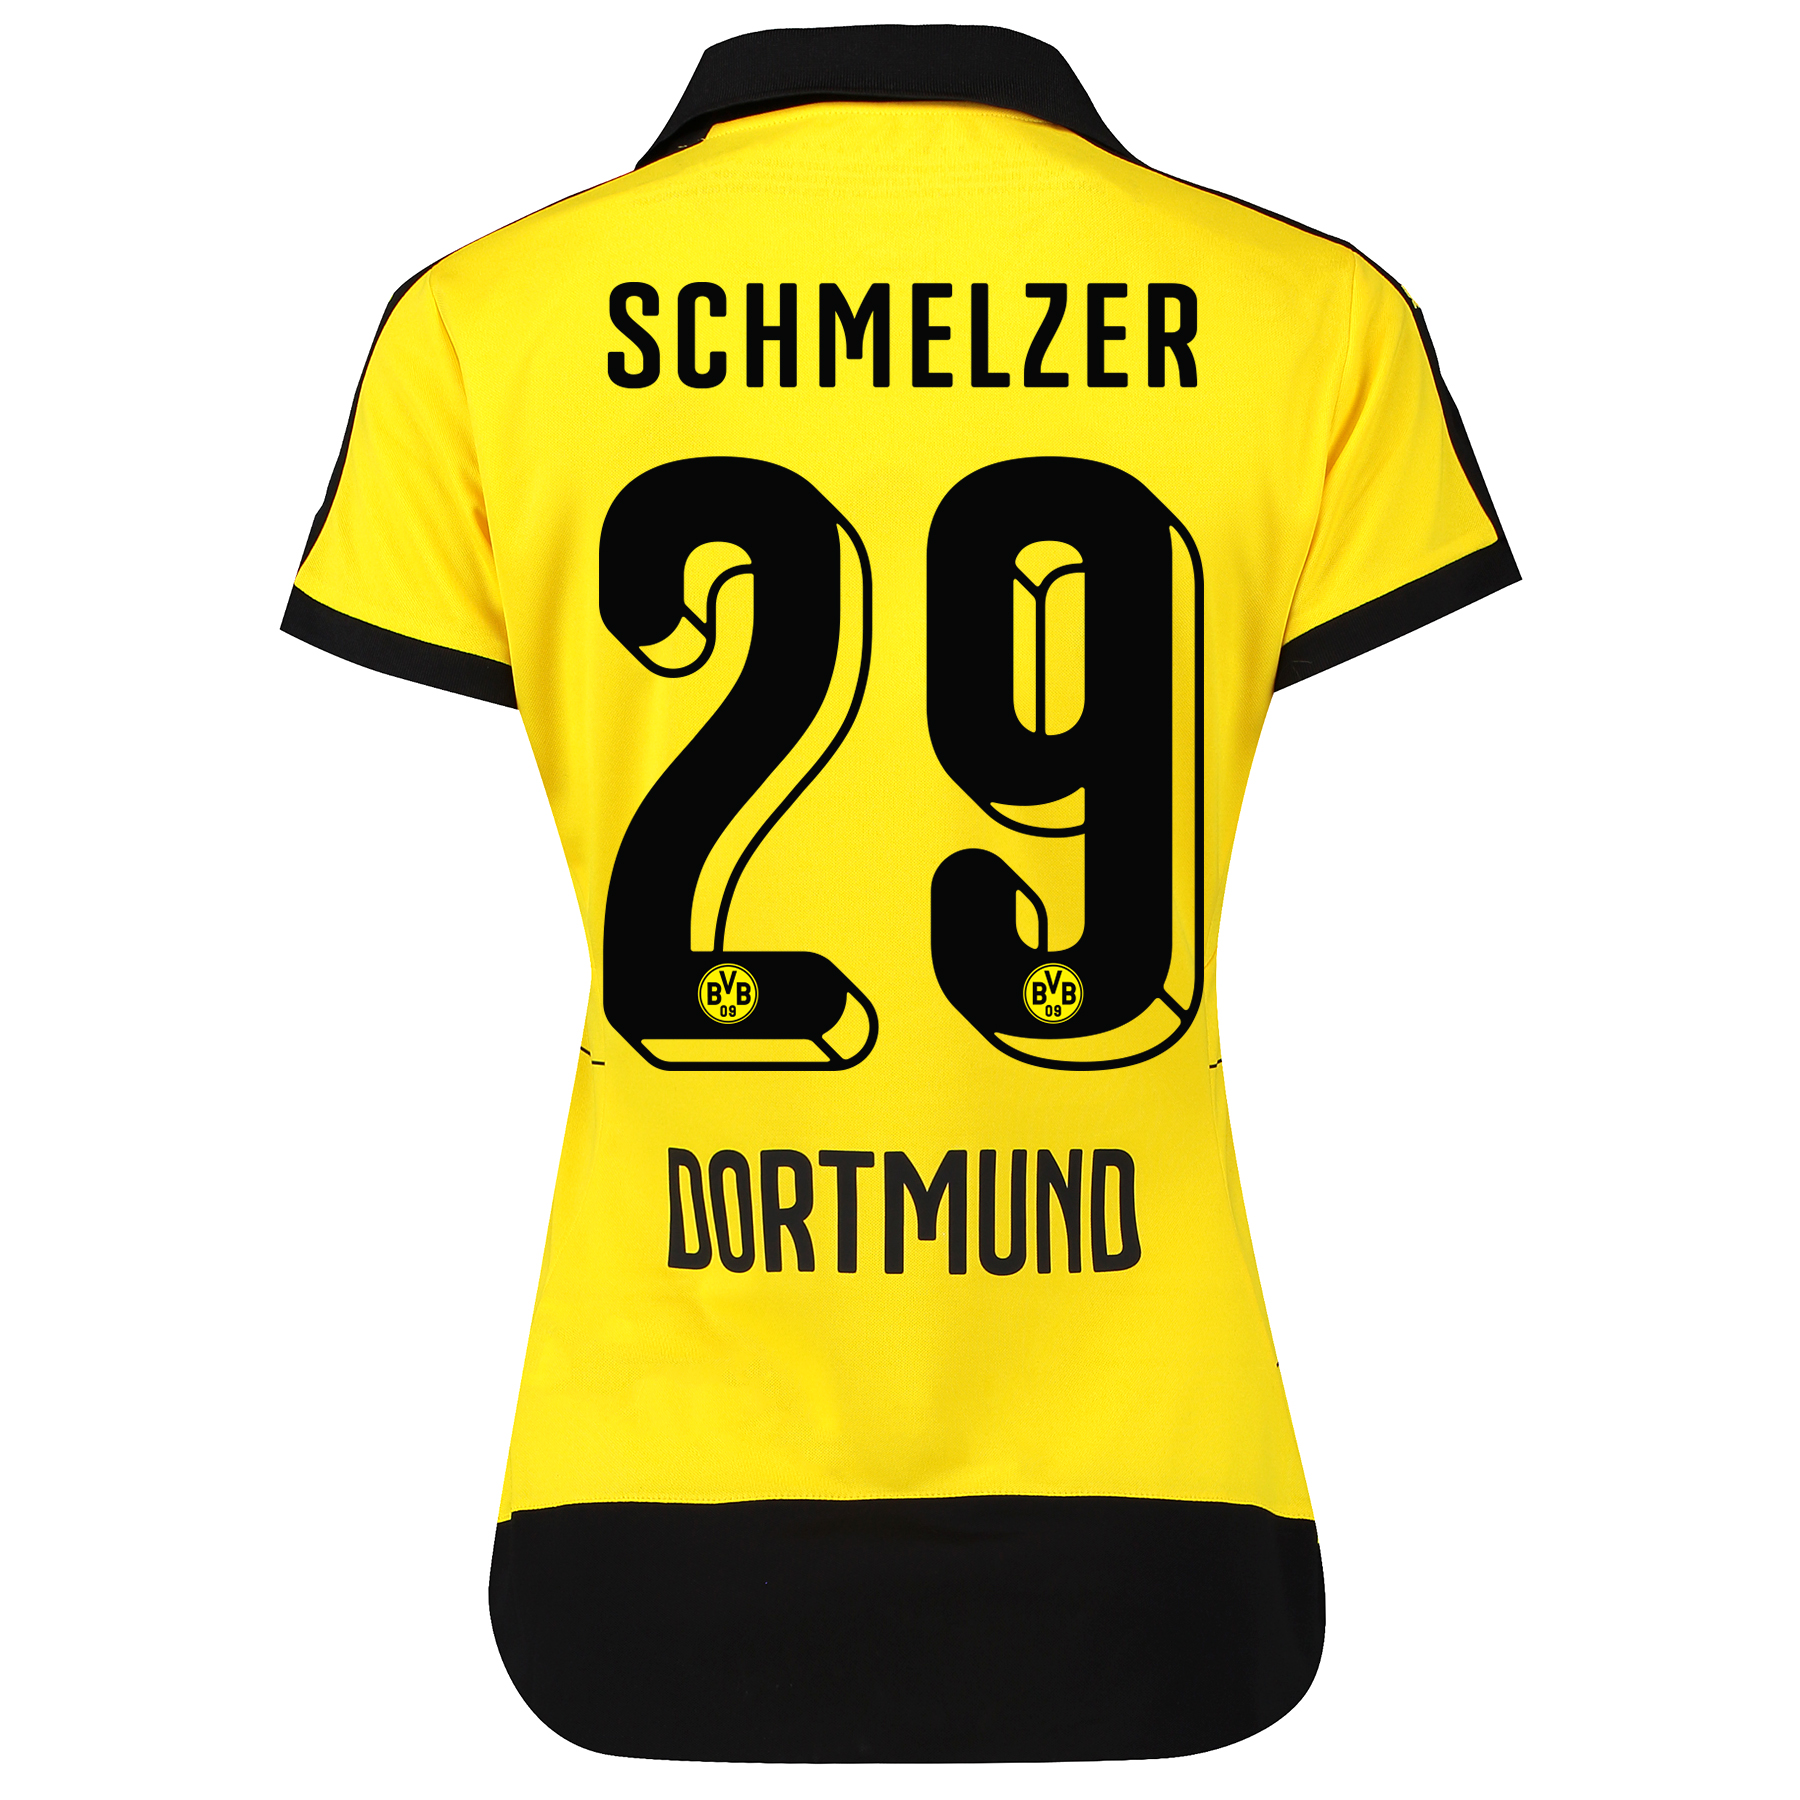 BVB Home Shirt 2015/16 – Womens with Sponsor Yellow with Schmelzer 29